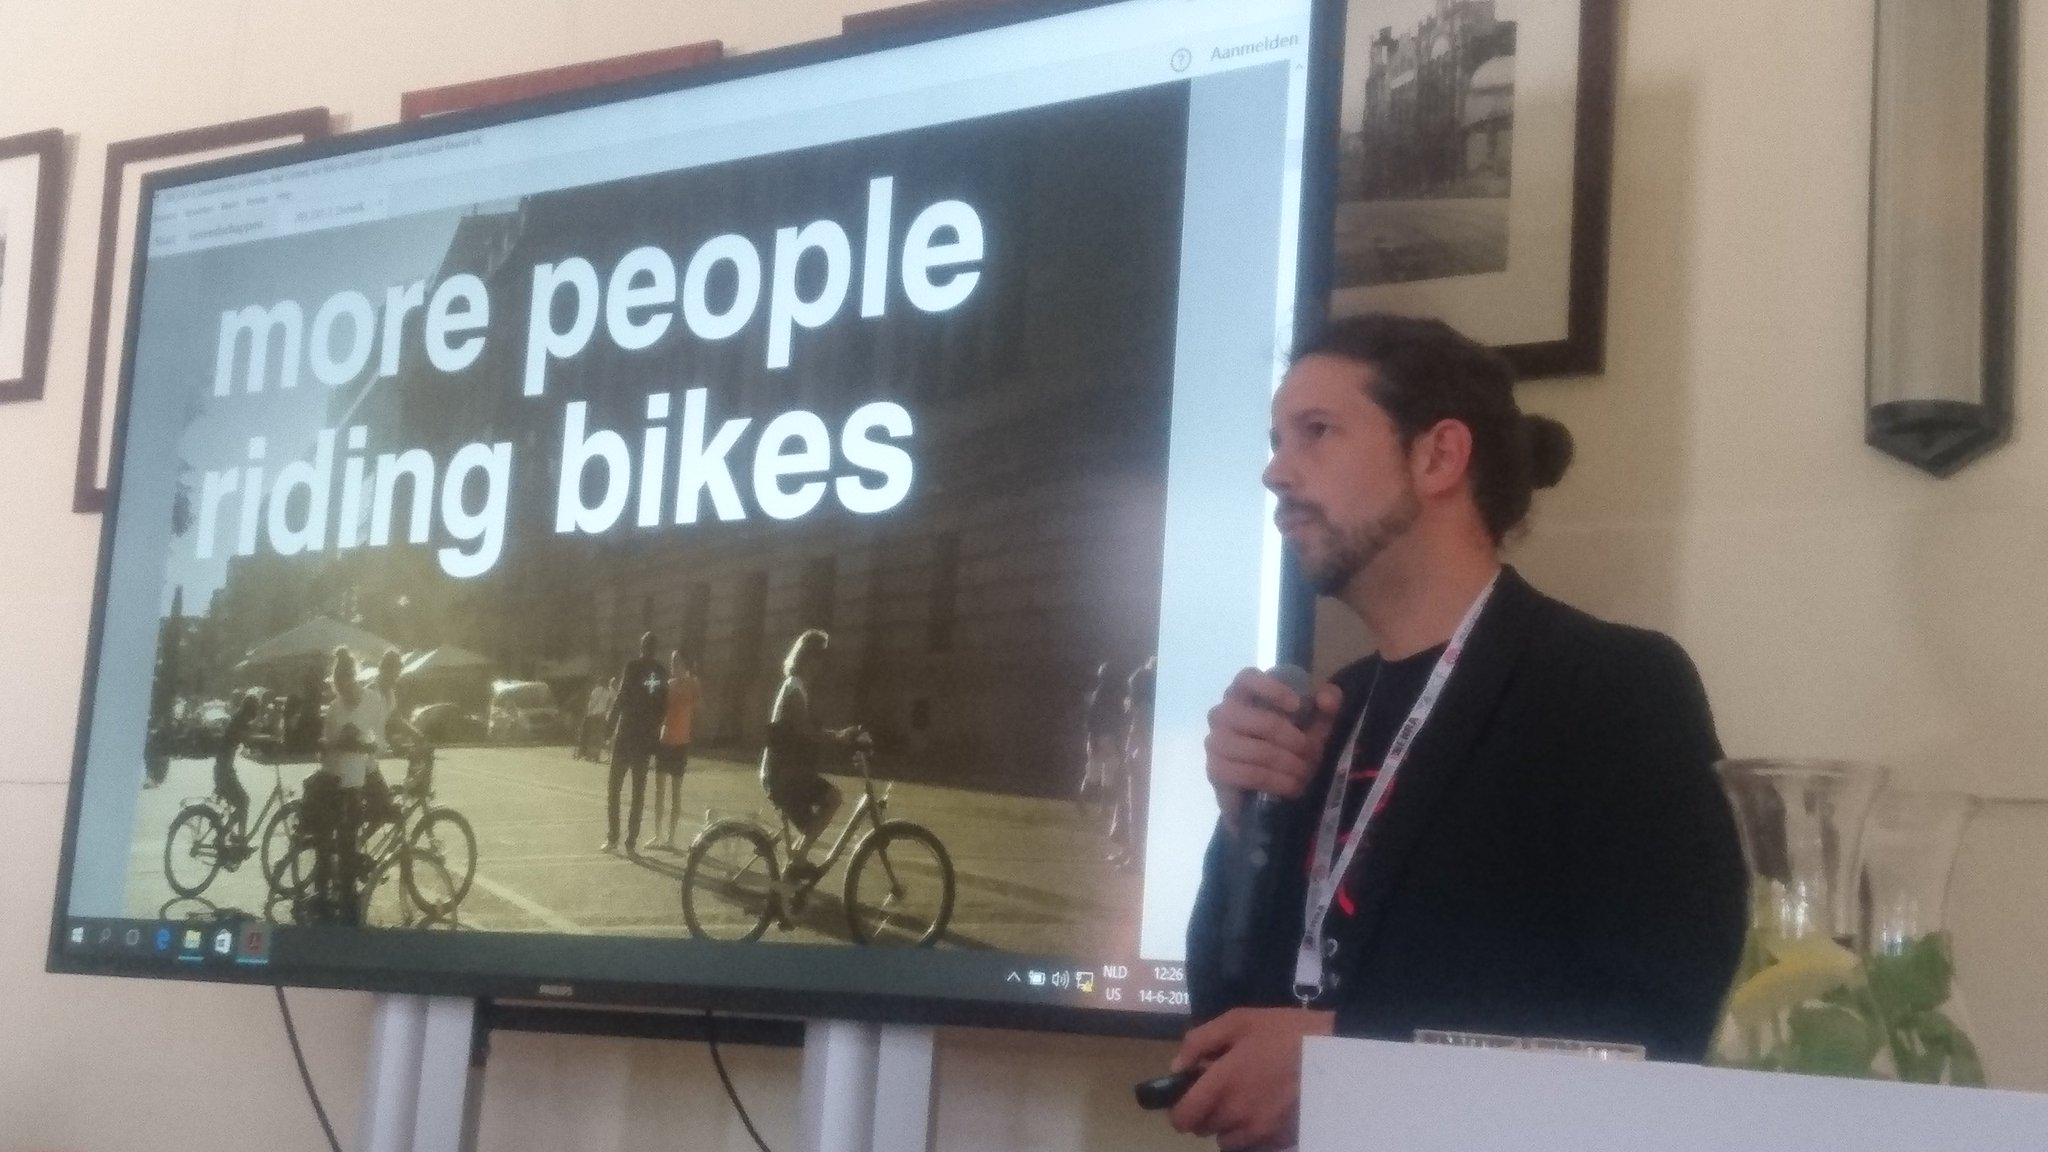 More people riding bikes means more people have to find the best way @BikeCitizens app shows them and collects trip data @Velocity2017 #VC17 https://t.co/K6WsH19kJC